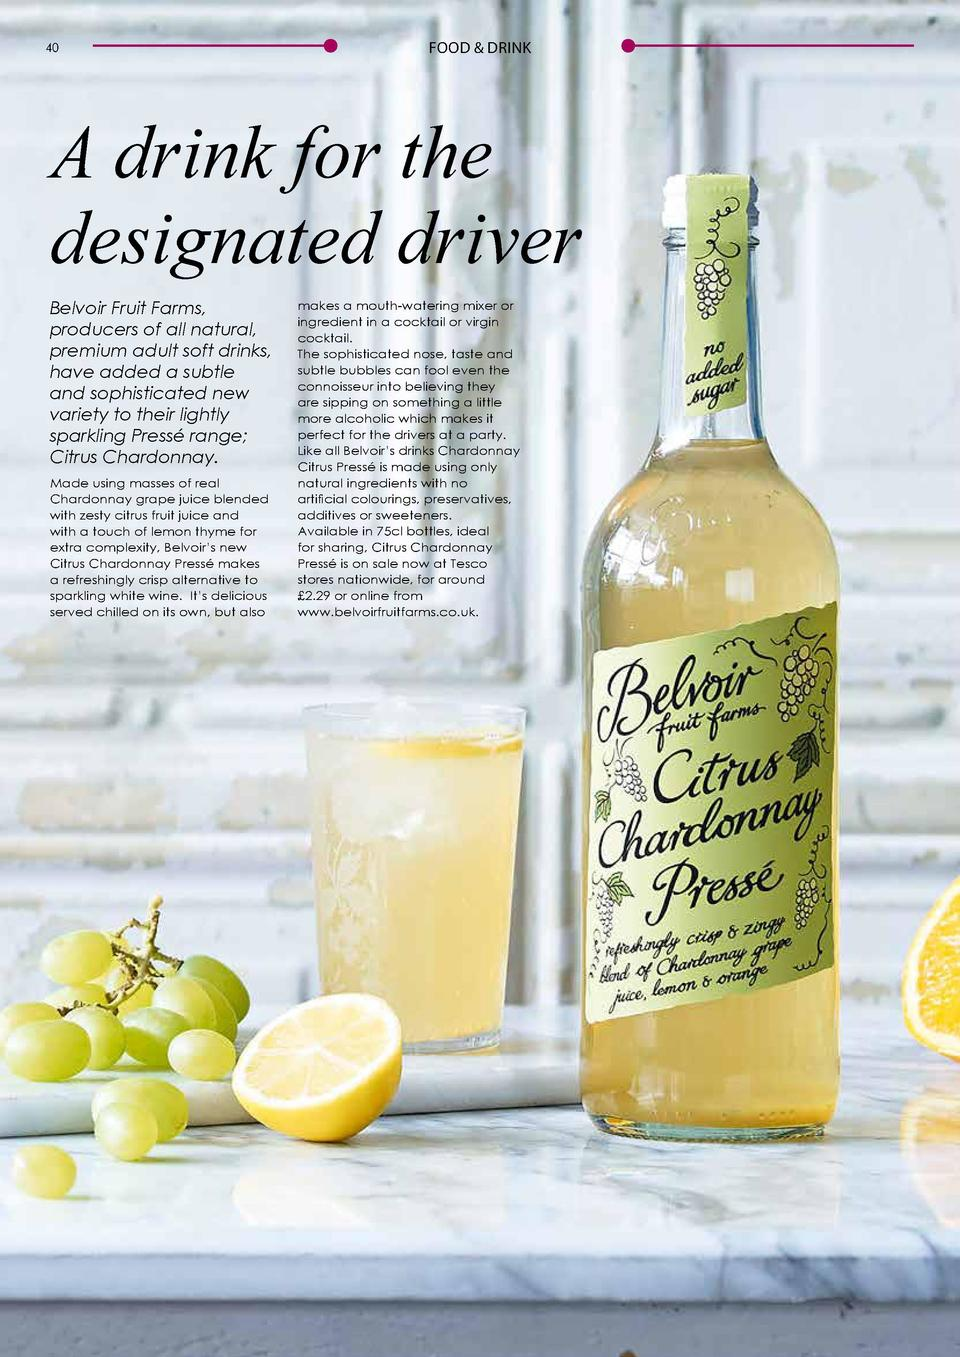 40  FOOD   DRINK  FOOD   DRINK  41  A drink for the designated driver Belvoir Fruit Farms, producers of all natural, premi...